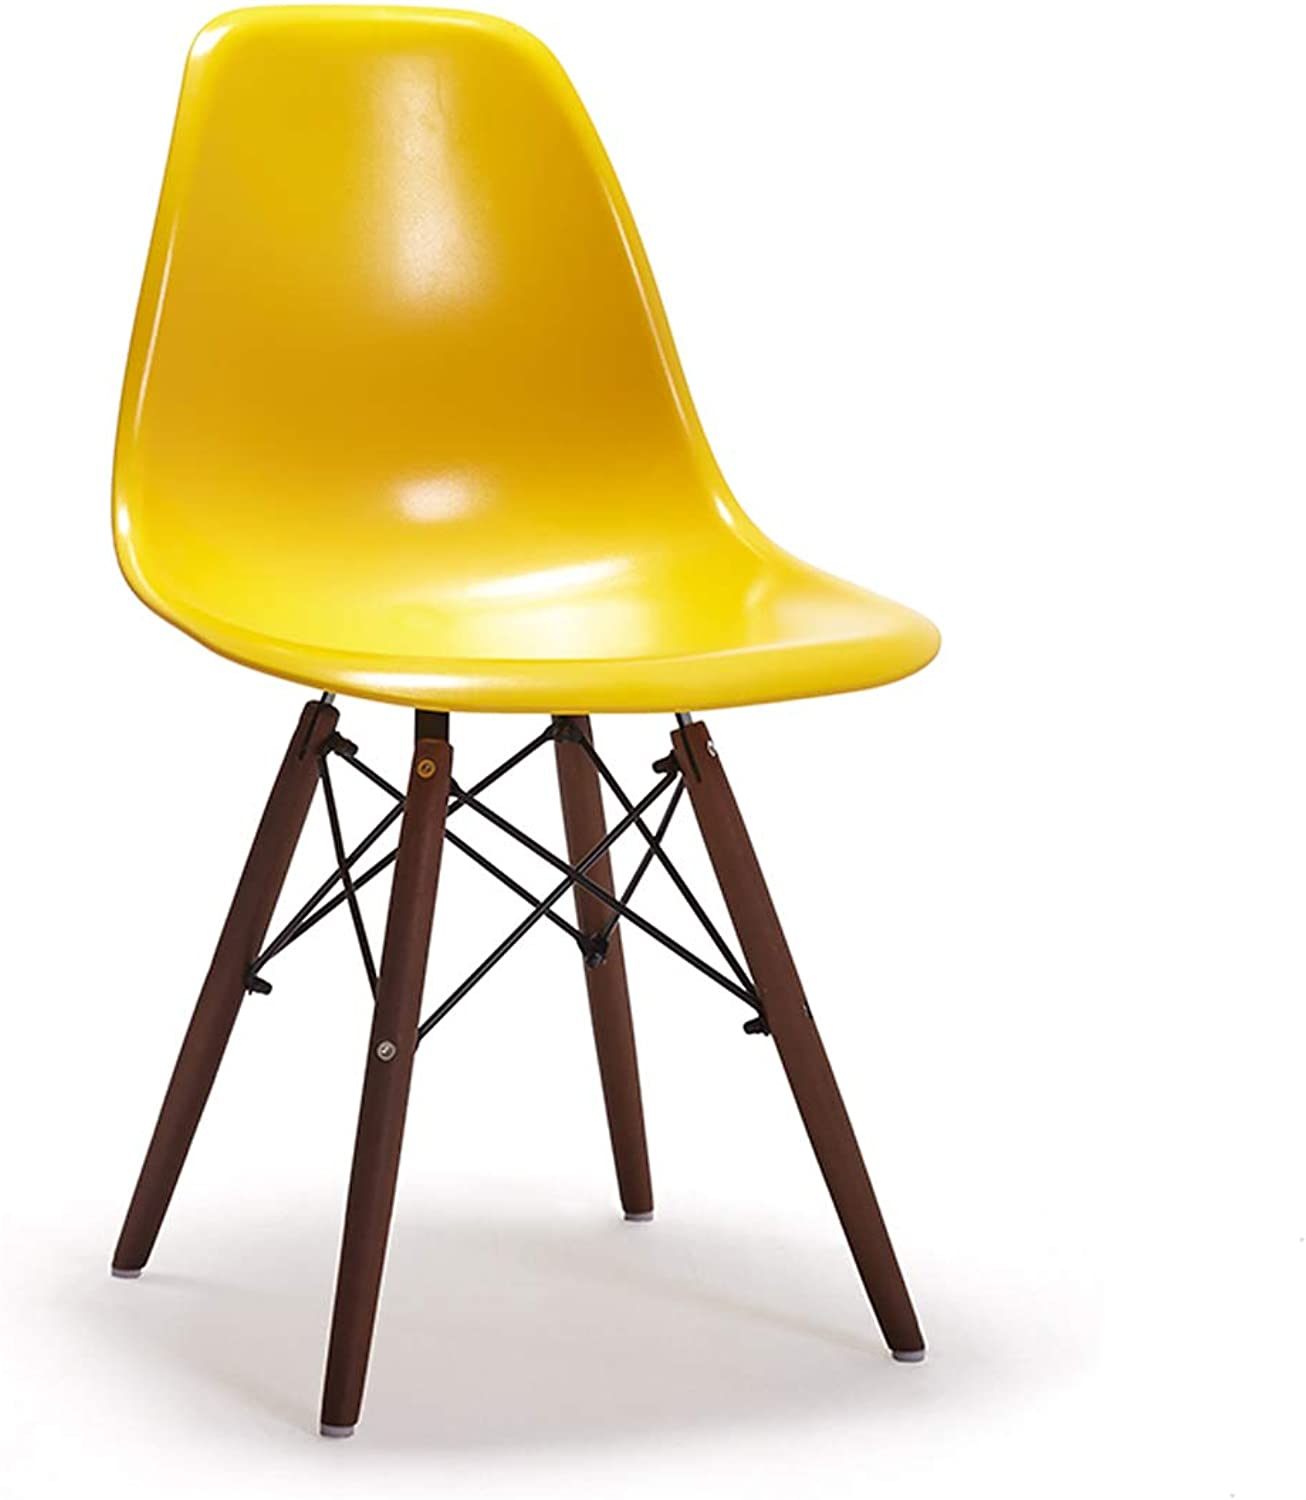 LRW European Style Back Chair Creative and Fashionable Wooden Leg Chair (color   Yellow)